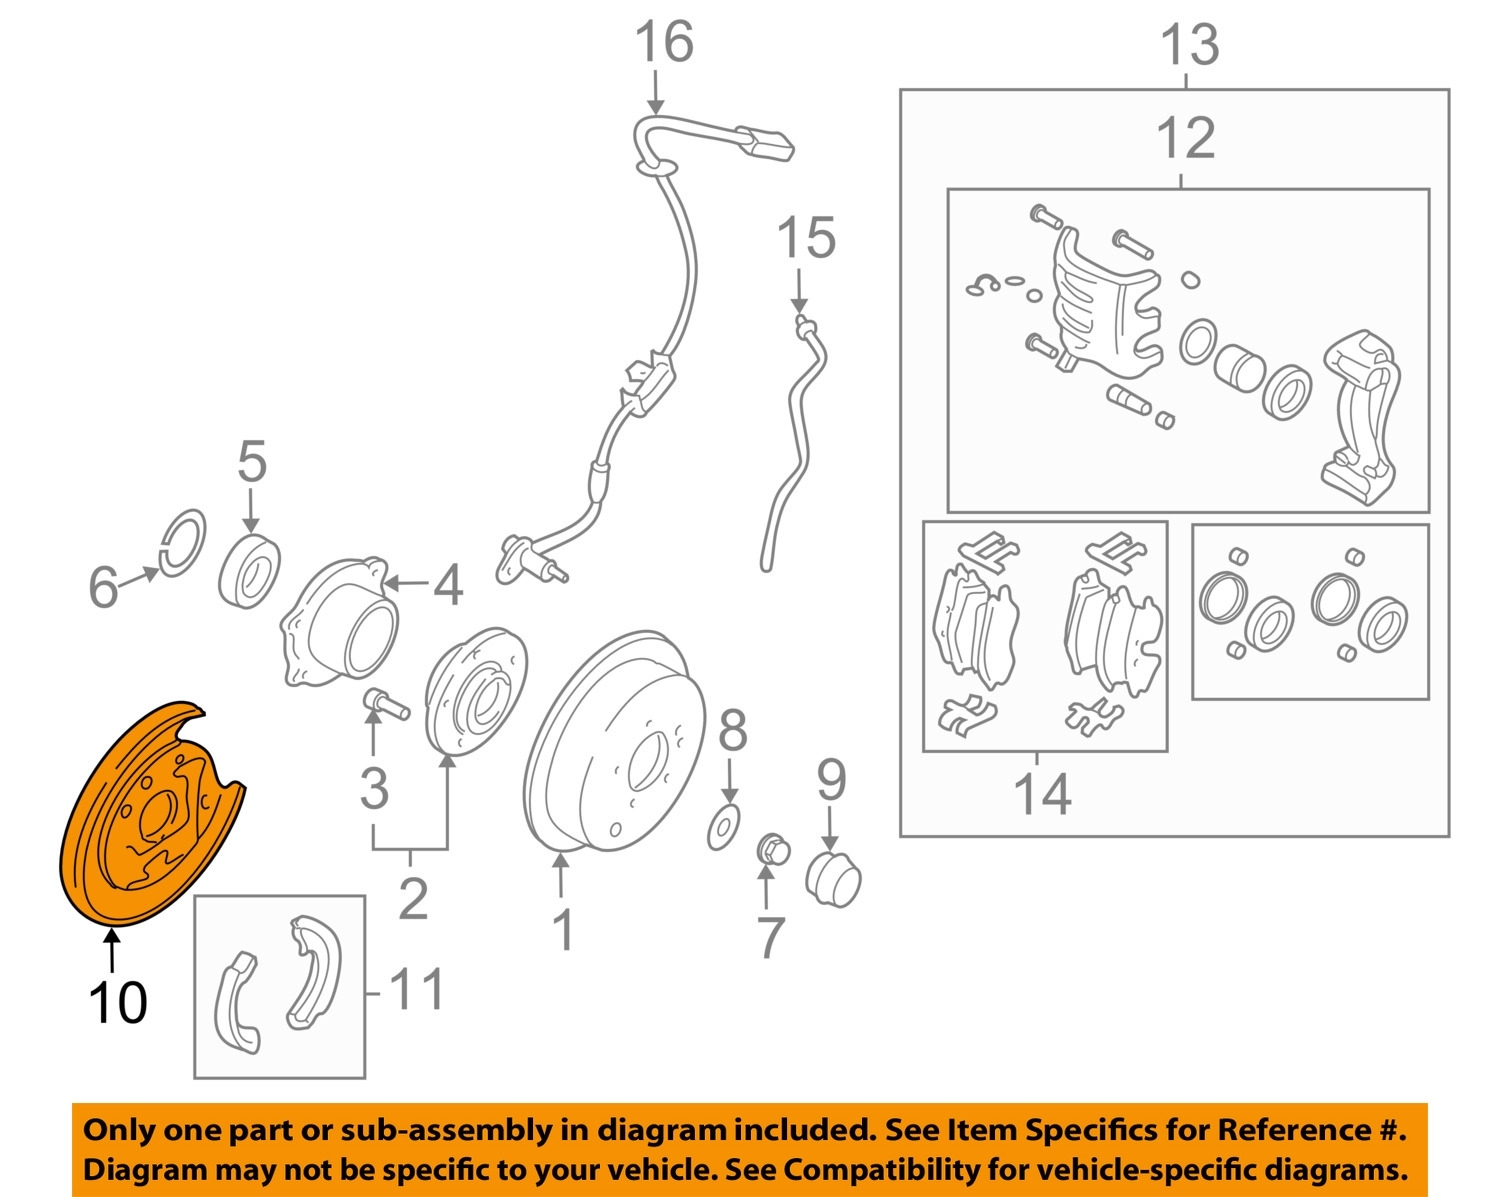 Hyundai Oem Santa Fe Rear Brake-Backing Plate Splash Dust Shield with 2002 Hyundai Santa Fe Parts Diagram